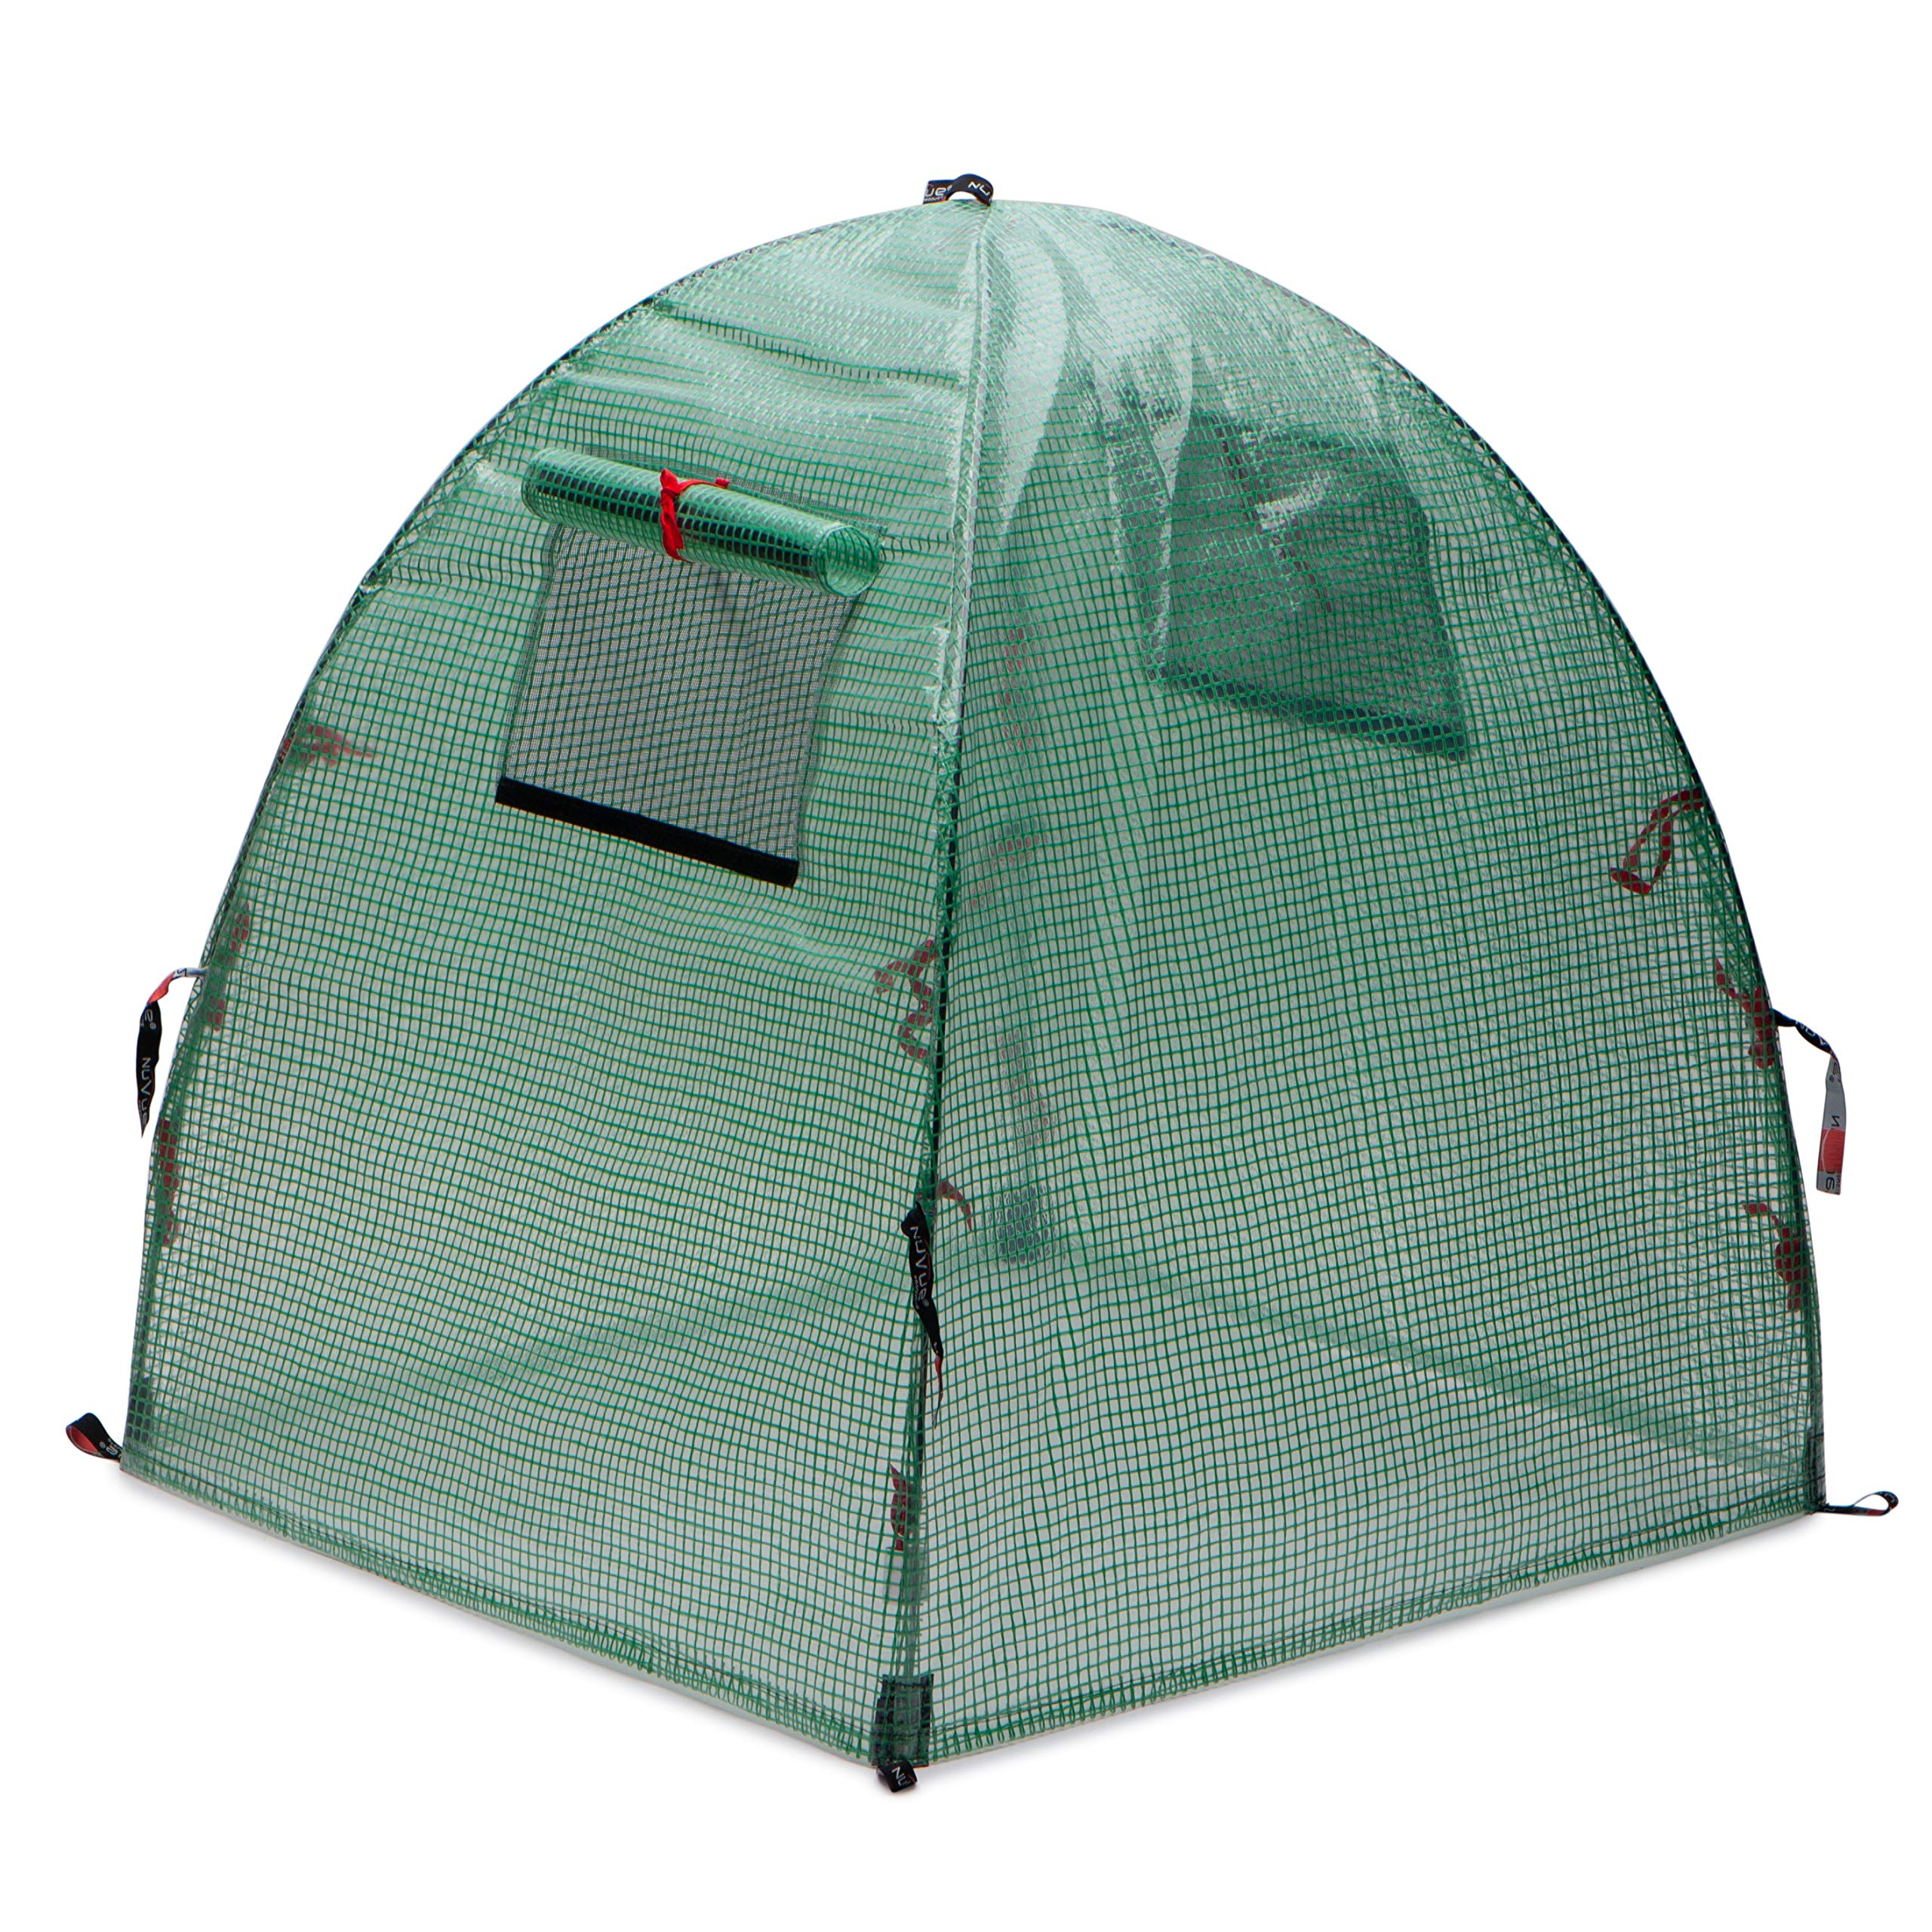 Nuvue Products 24045 pop-Open Greenhouse, Green